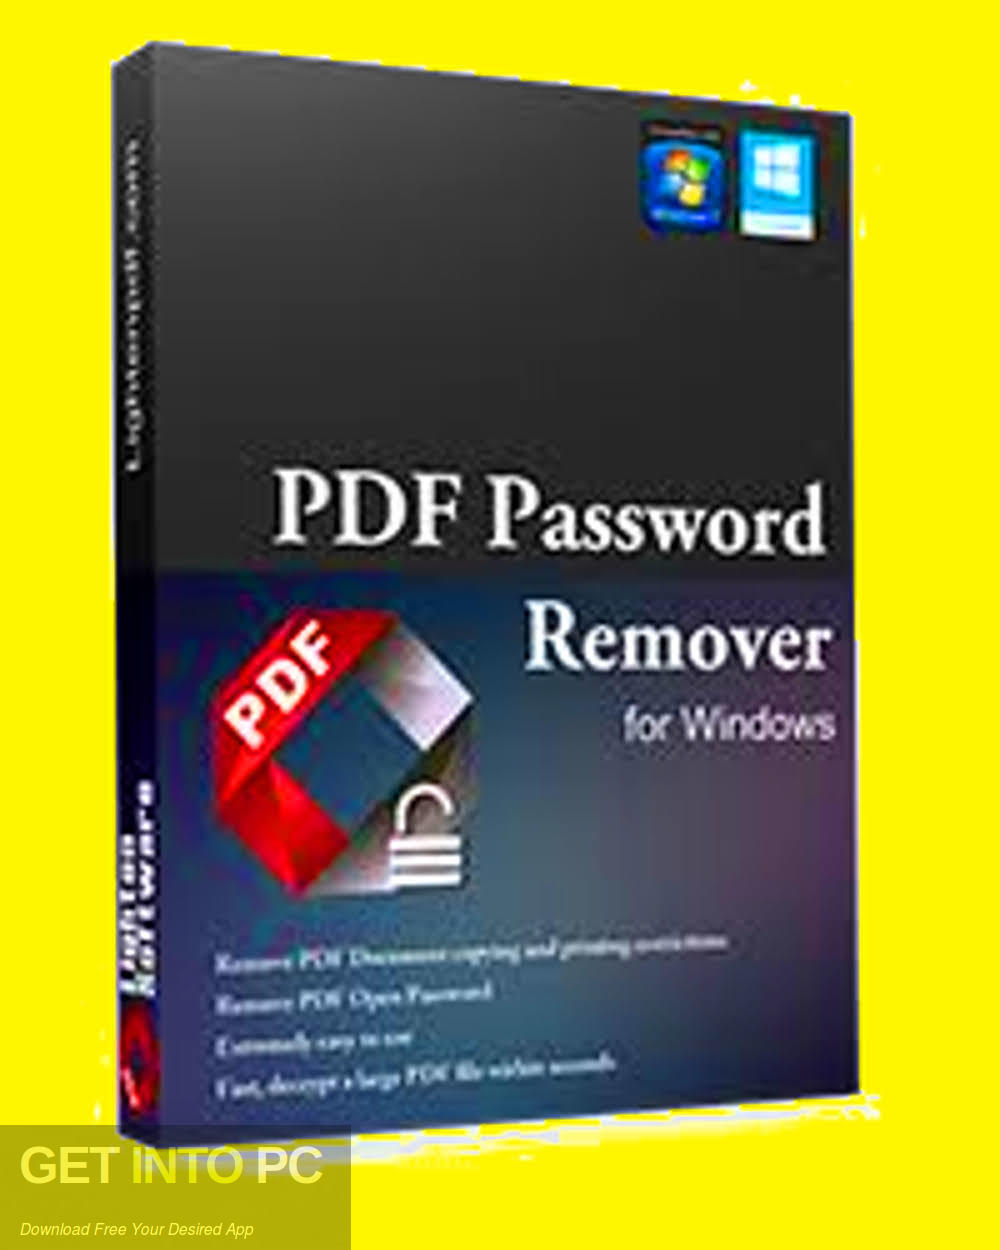 Lighten PDF Password Remover Download free-GetintoPC.com